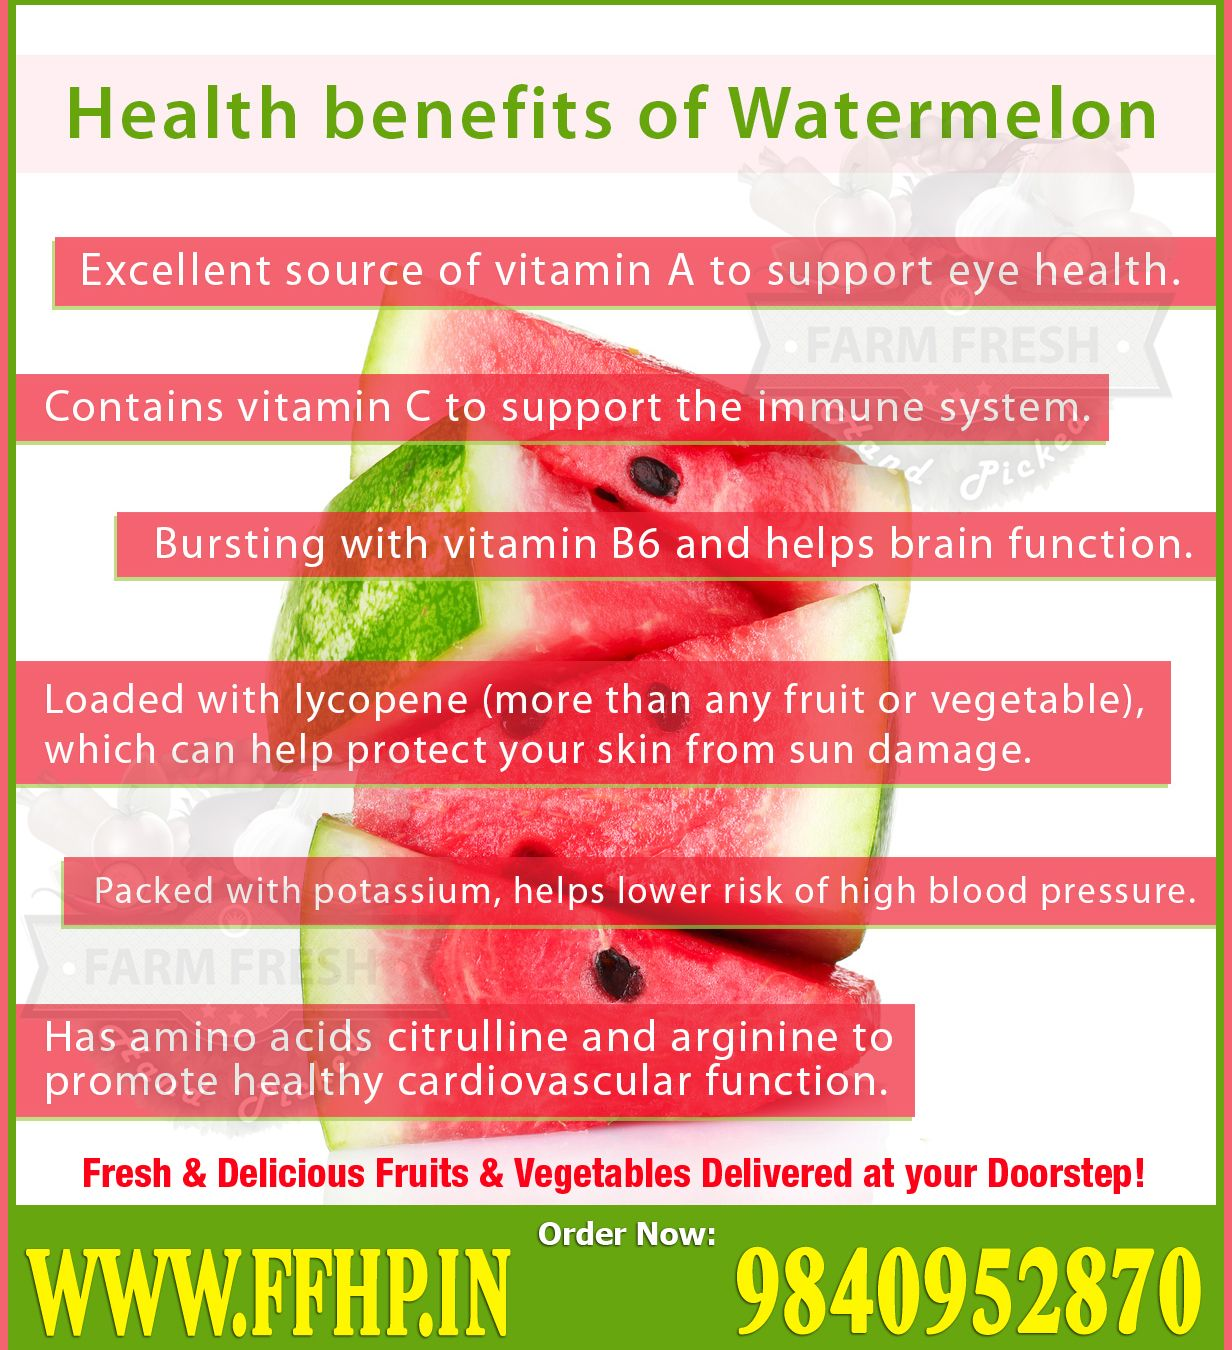 Health benefits of watermelon ffhp and